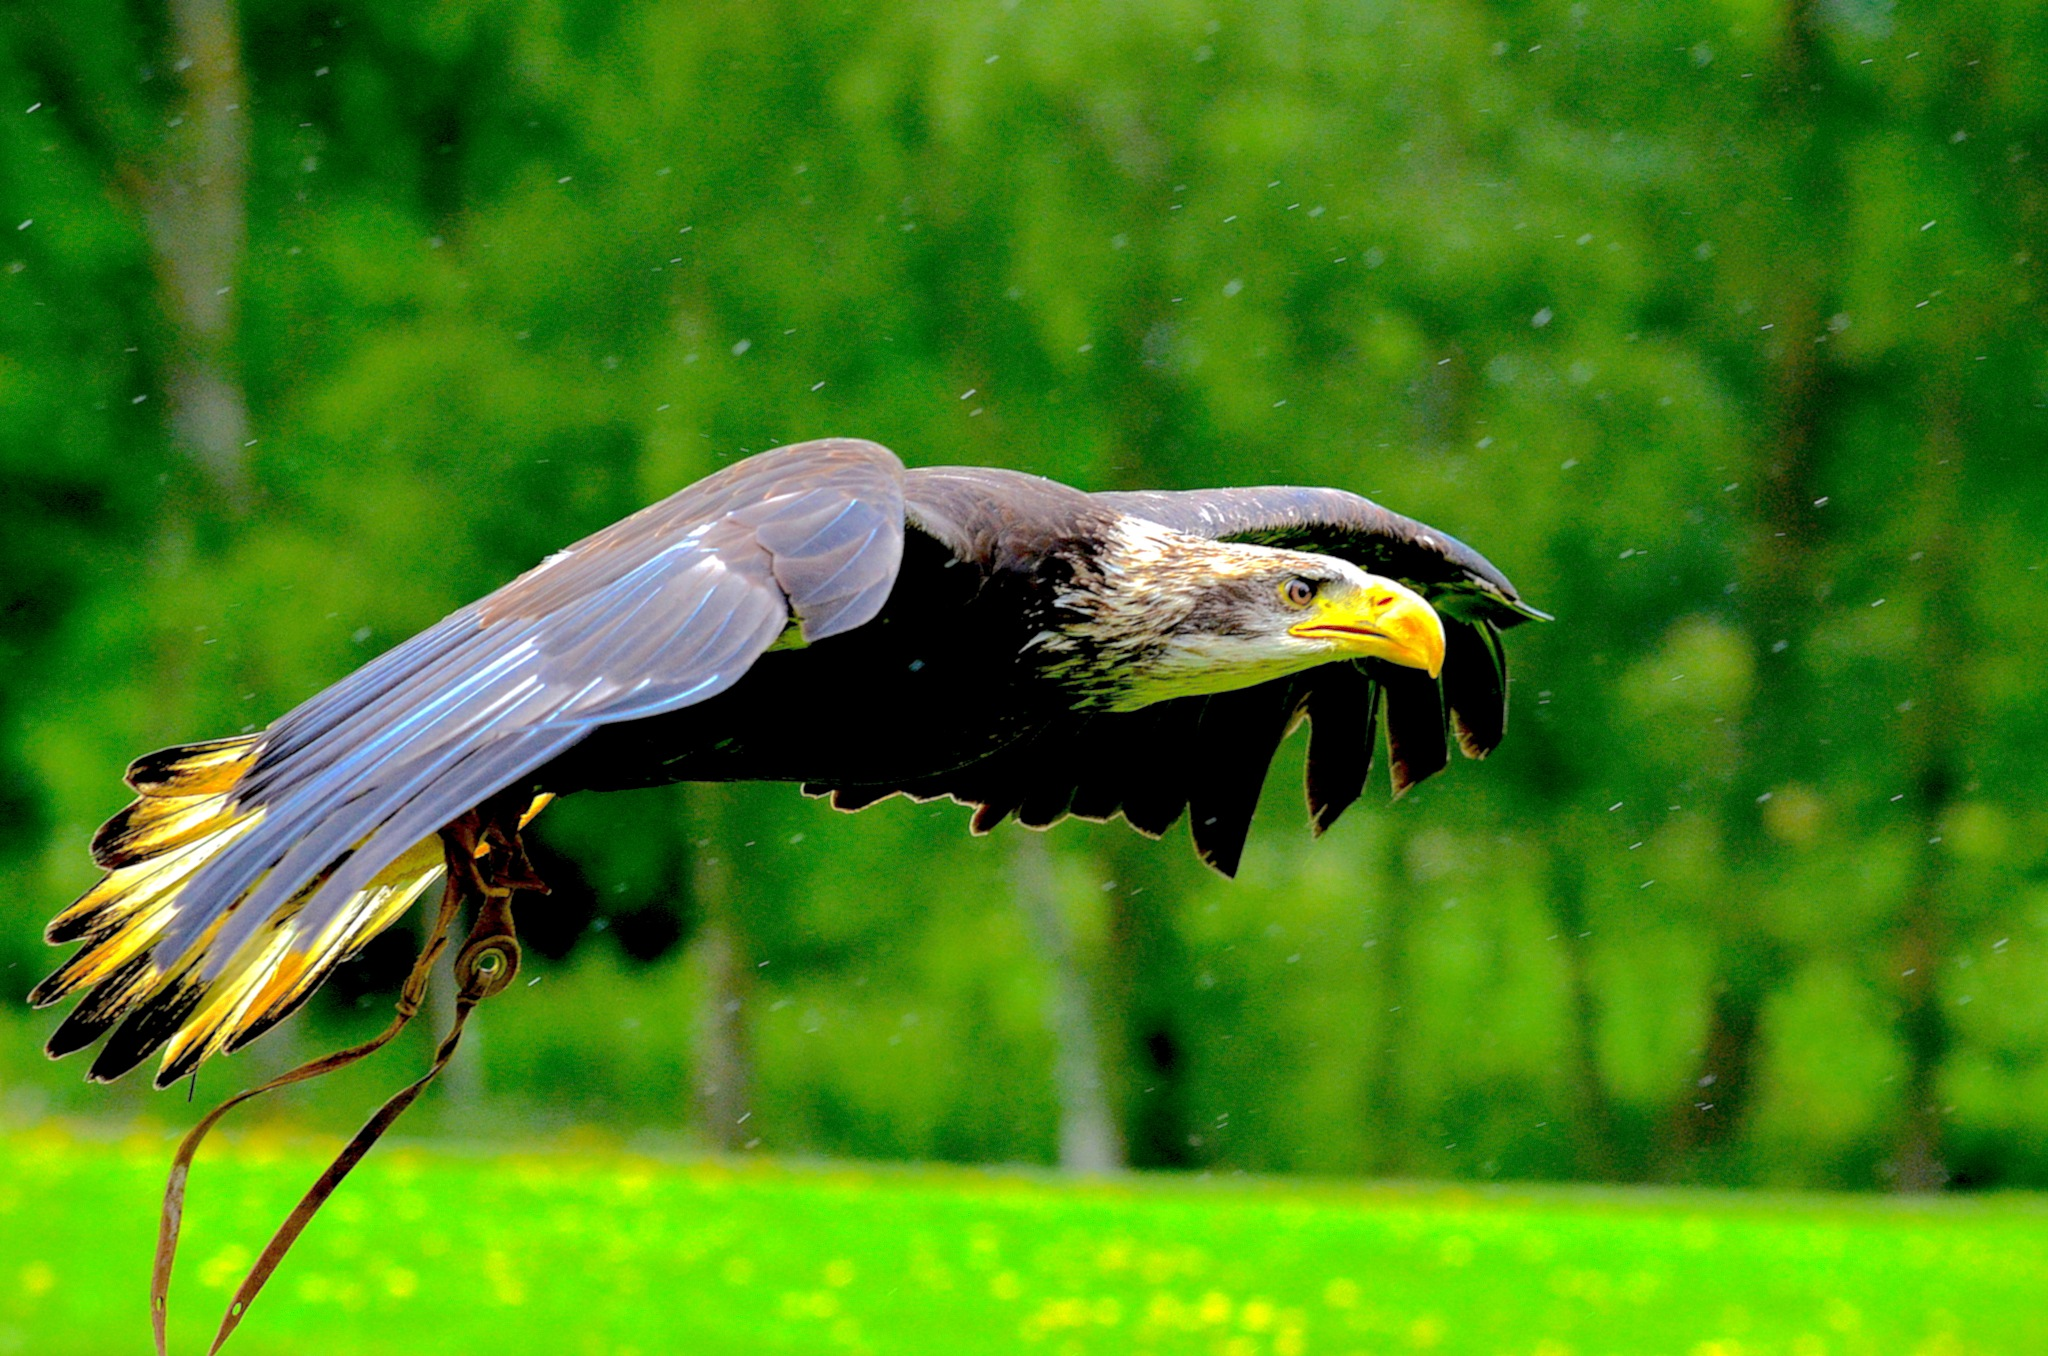 Eagle. View in Wide Screen. by John Cater